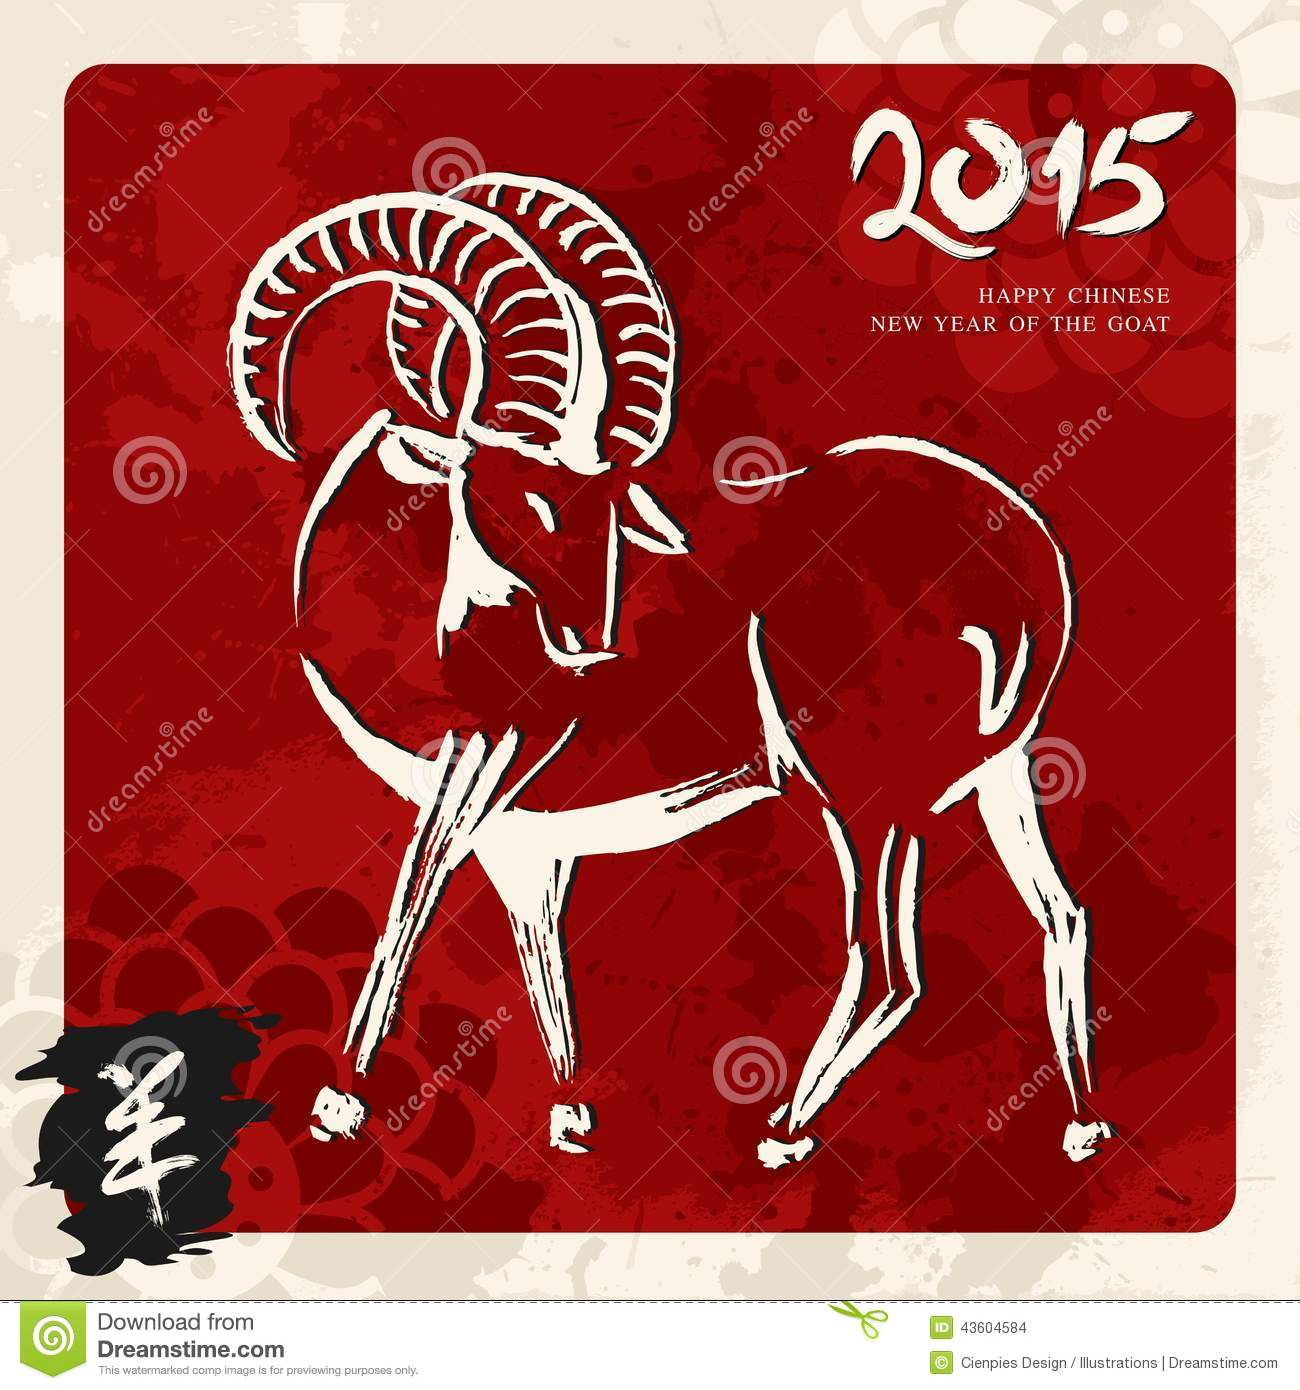 new year of the goat 2015 greeting card - Chinese New Year 2015 Animal